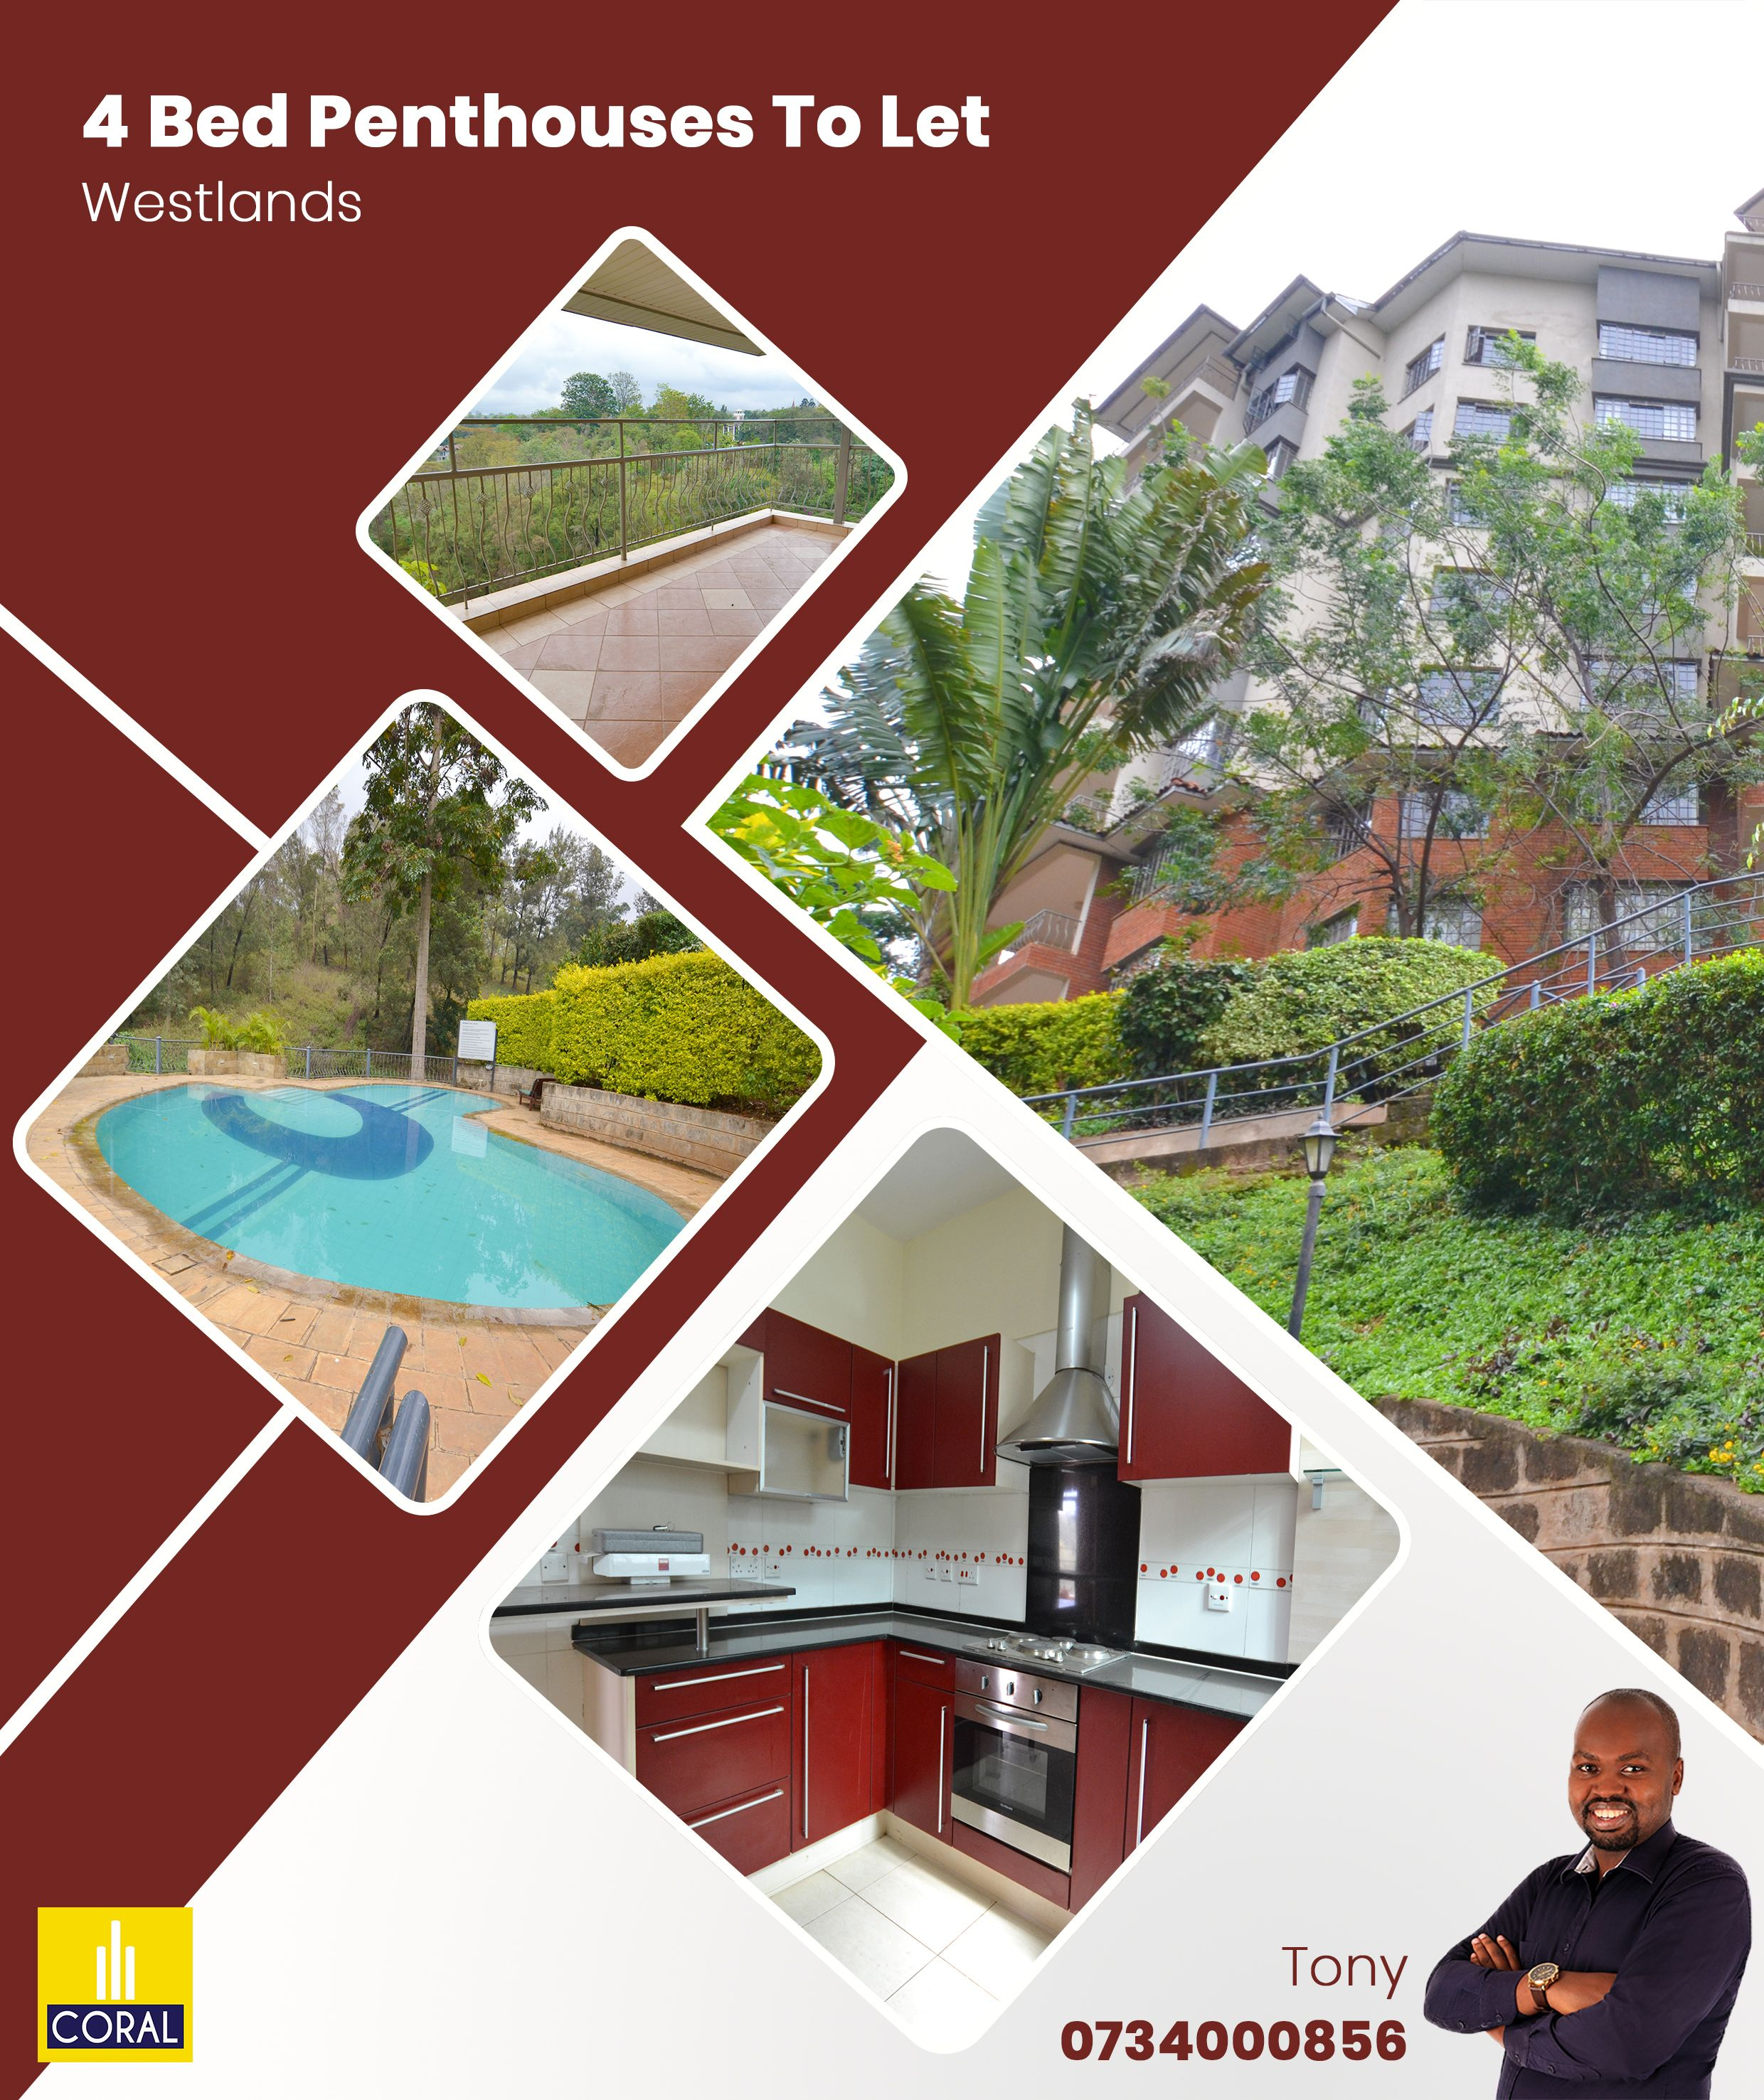 1 Bedroom Apartment Chelsea New York: 4 Bedroom Penthouses To Let In Westlands